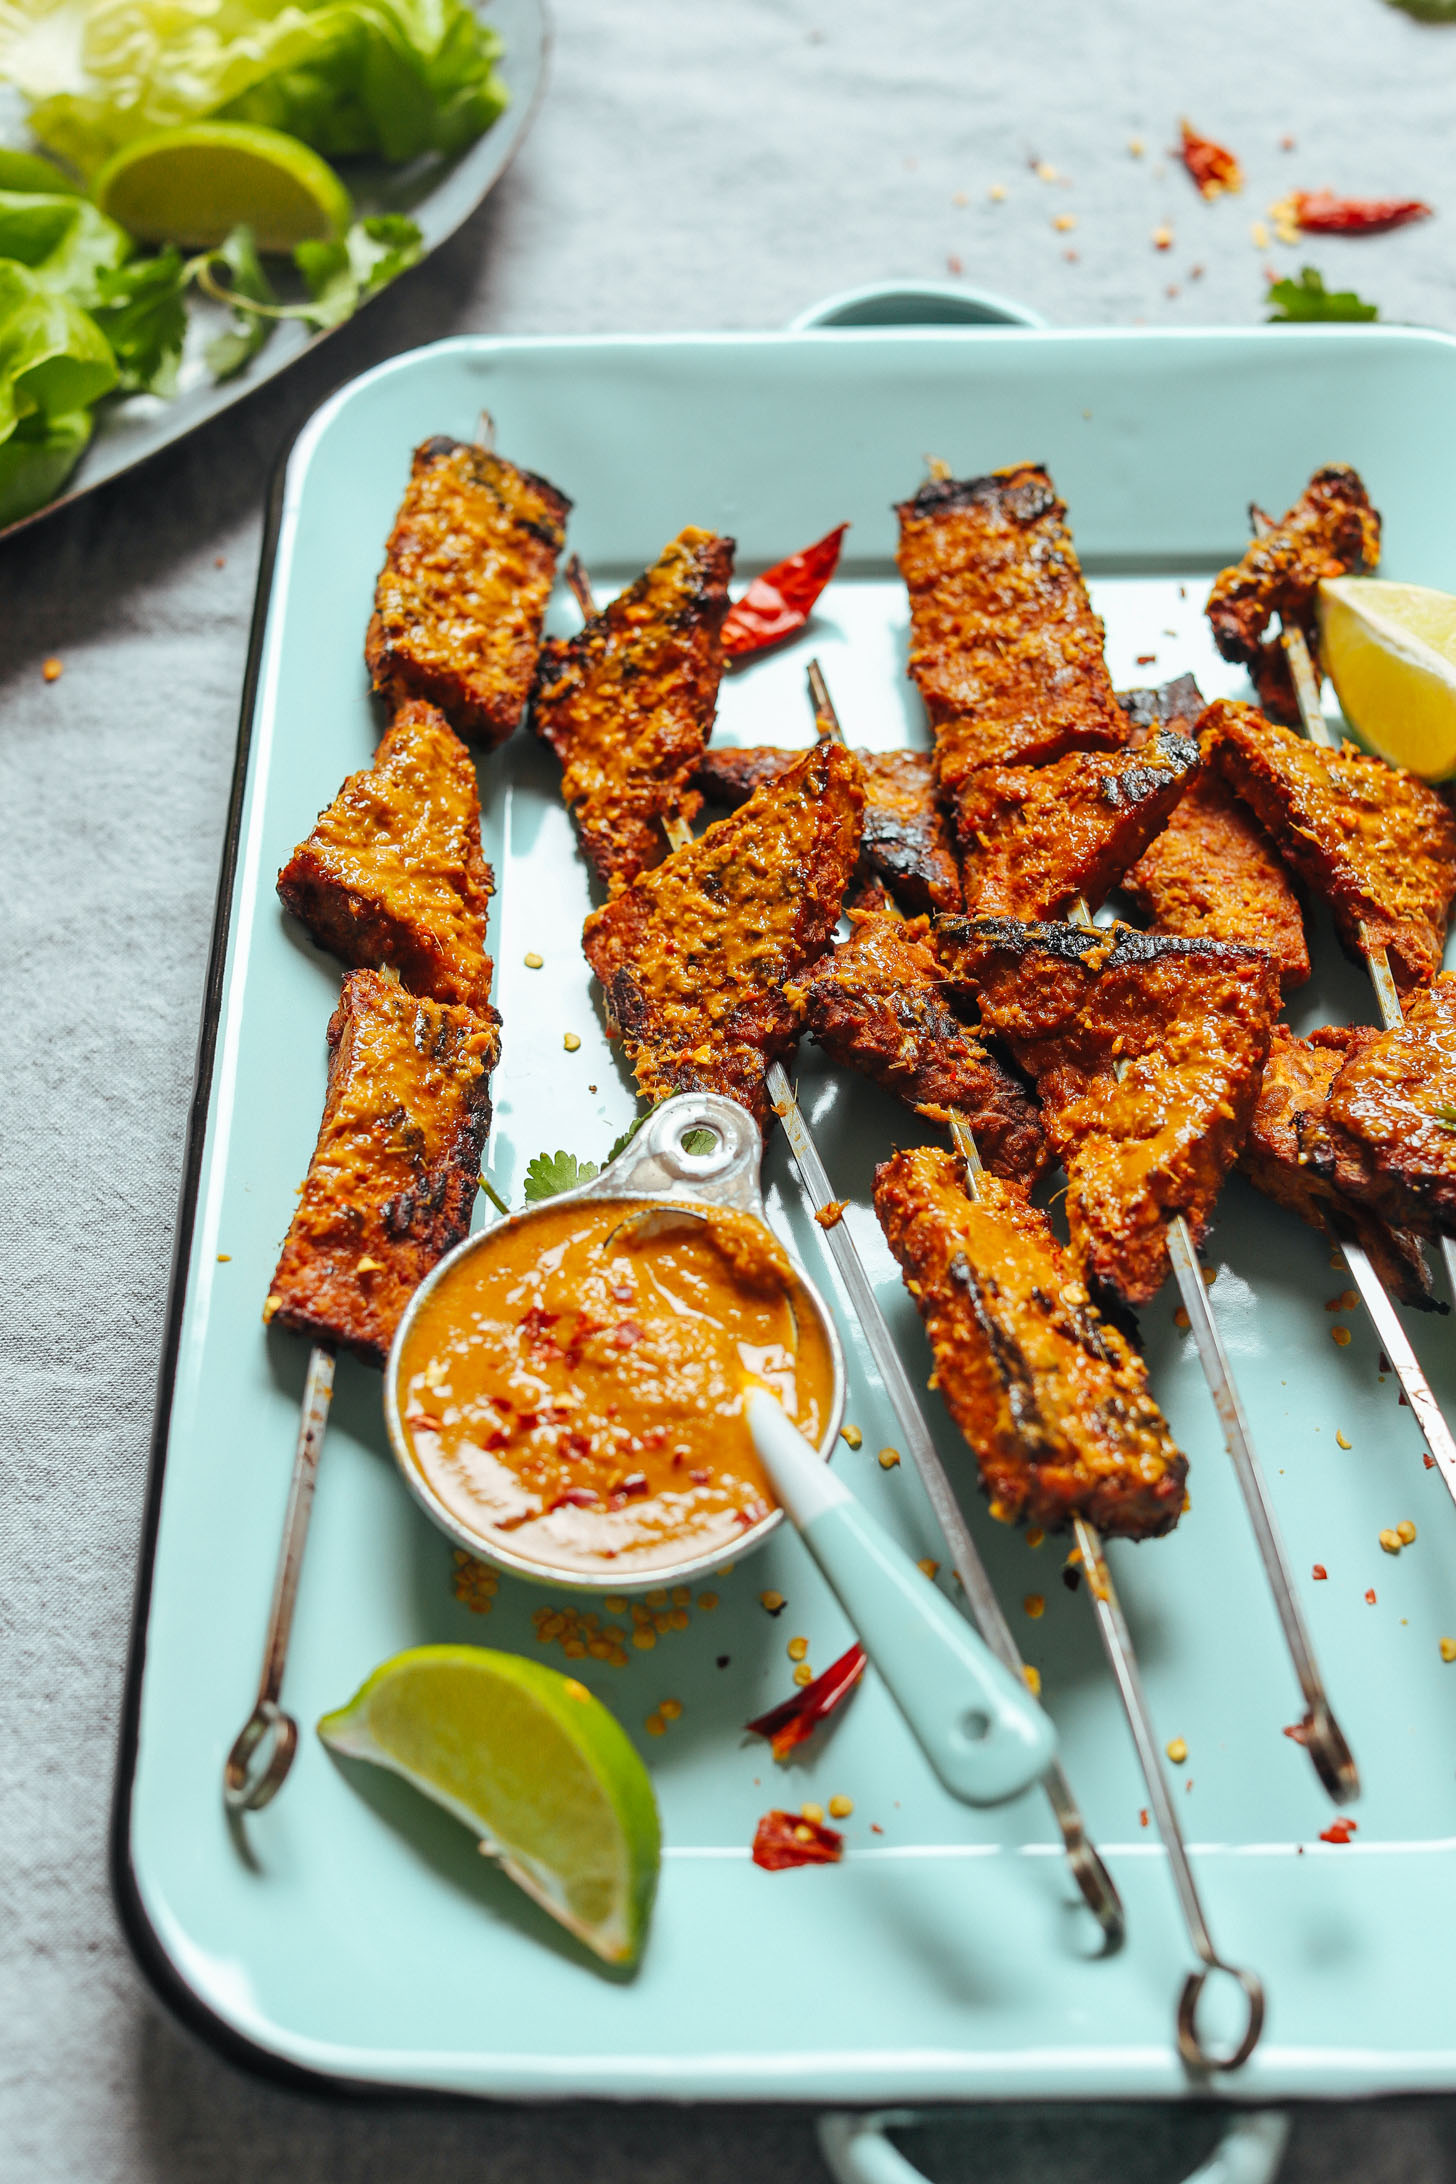 Blue platter with grilled vegan tempeh skewers and lemongrass sauce